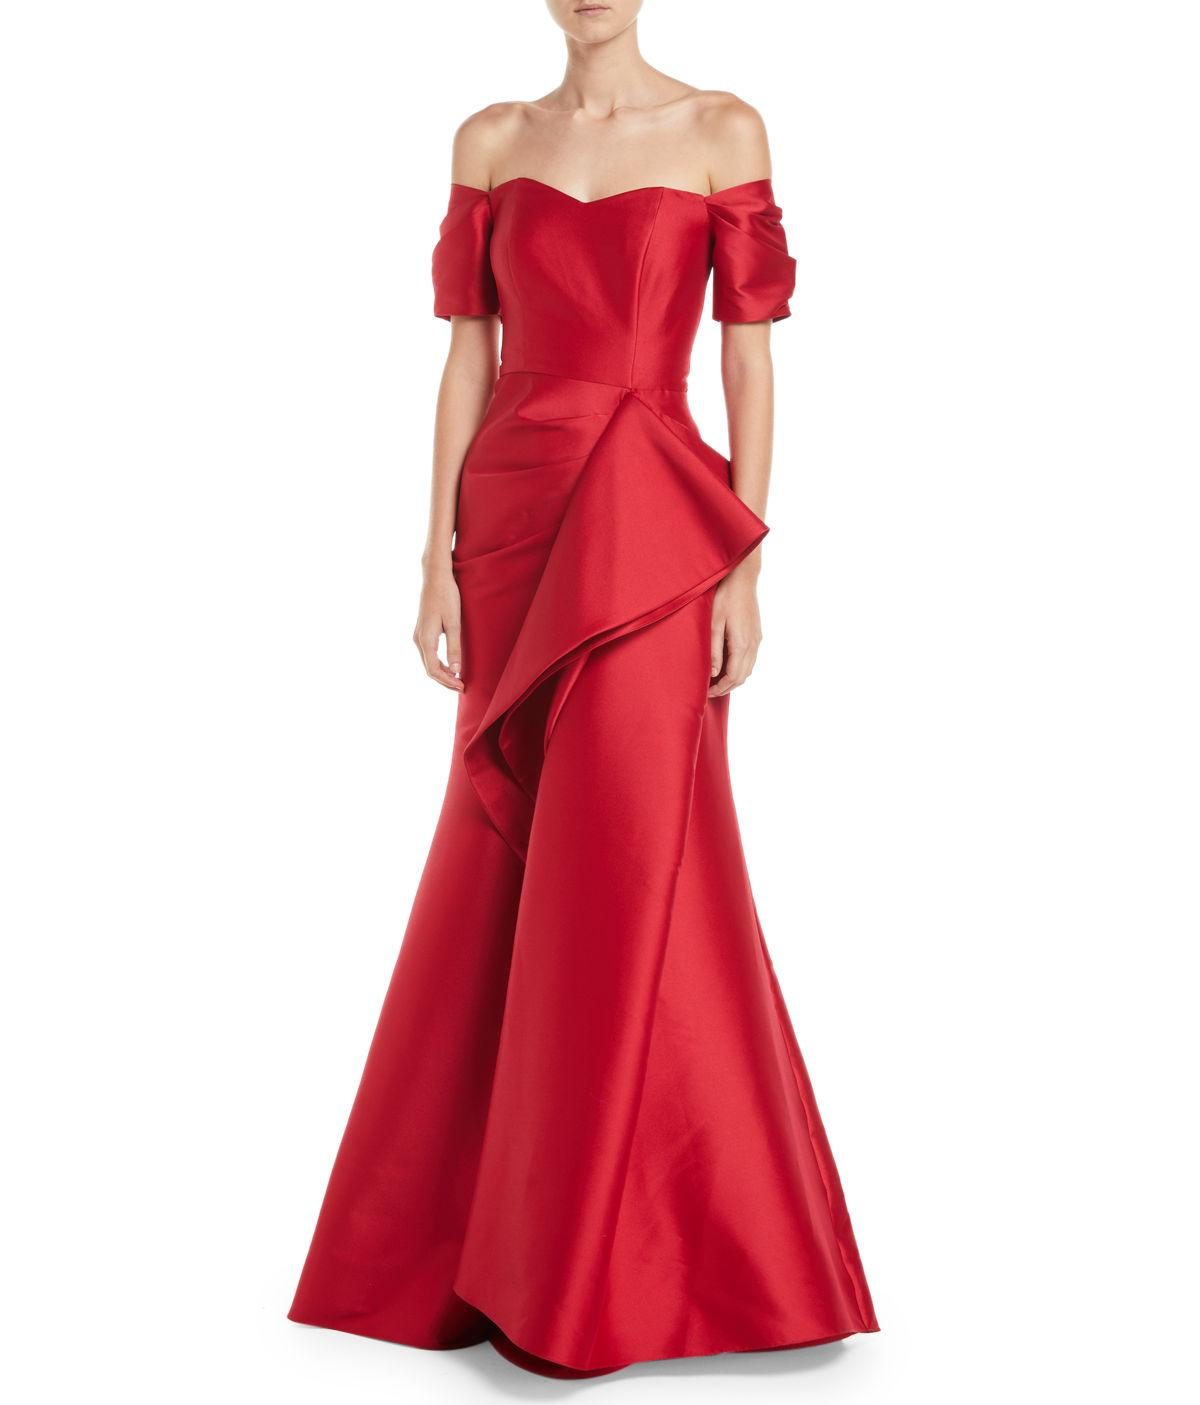 Lyst - Badgley Mischka Off-the-shoulder Gown W/ Dramatic Ruffle in Red